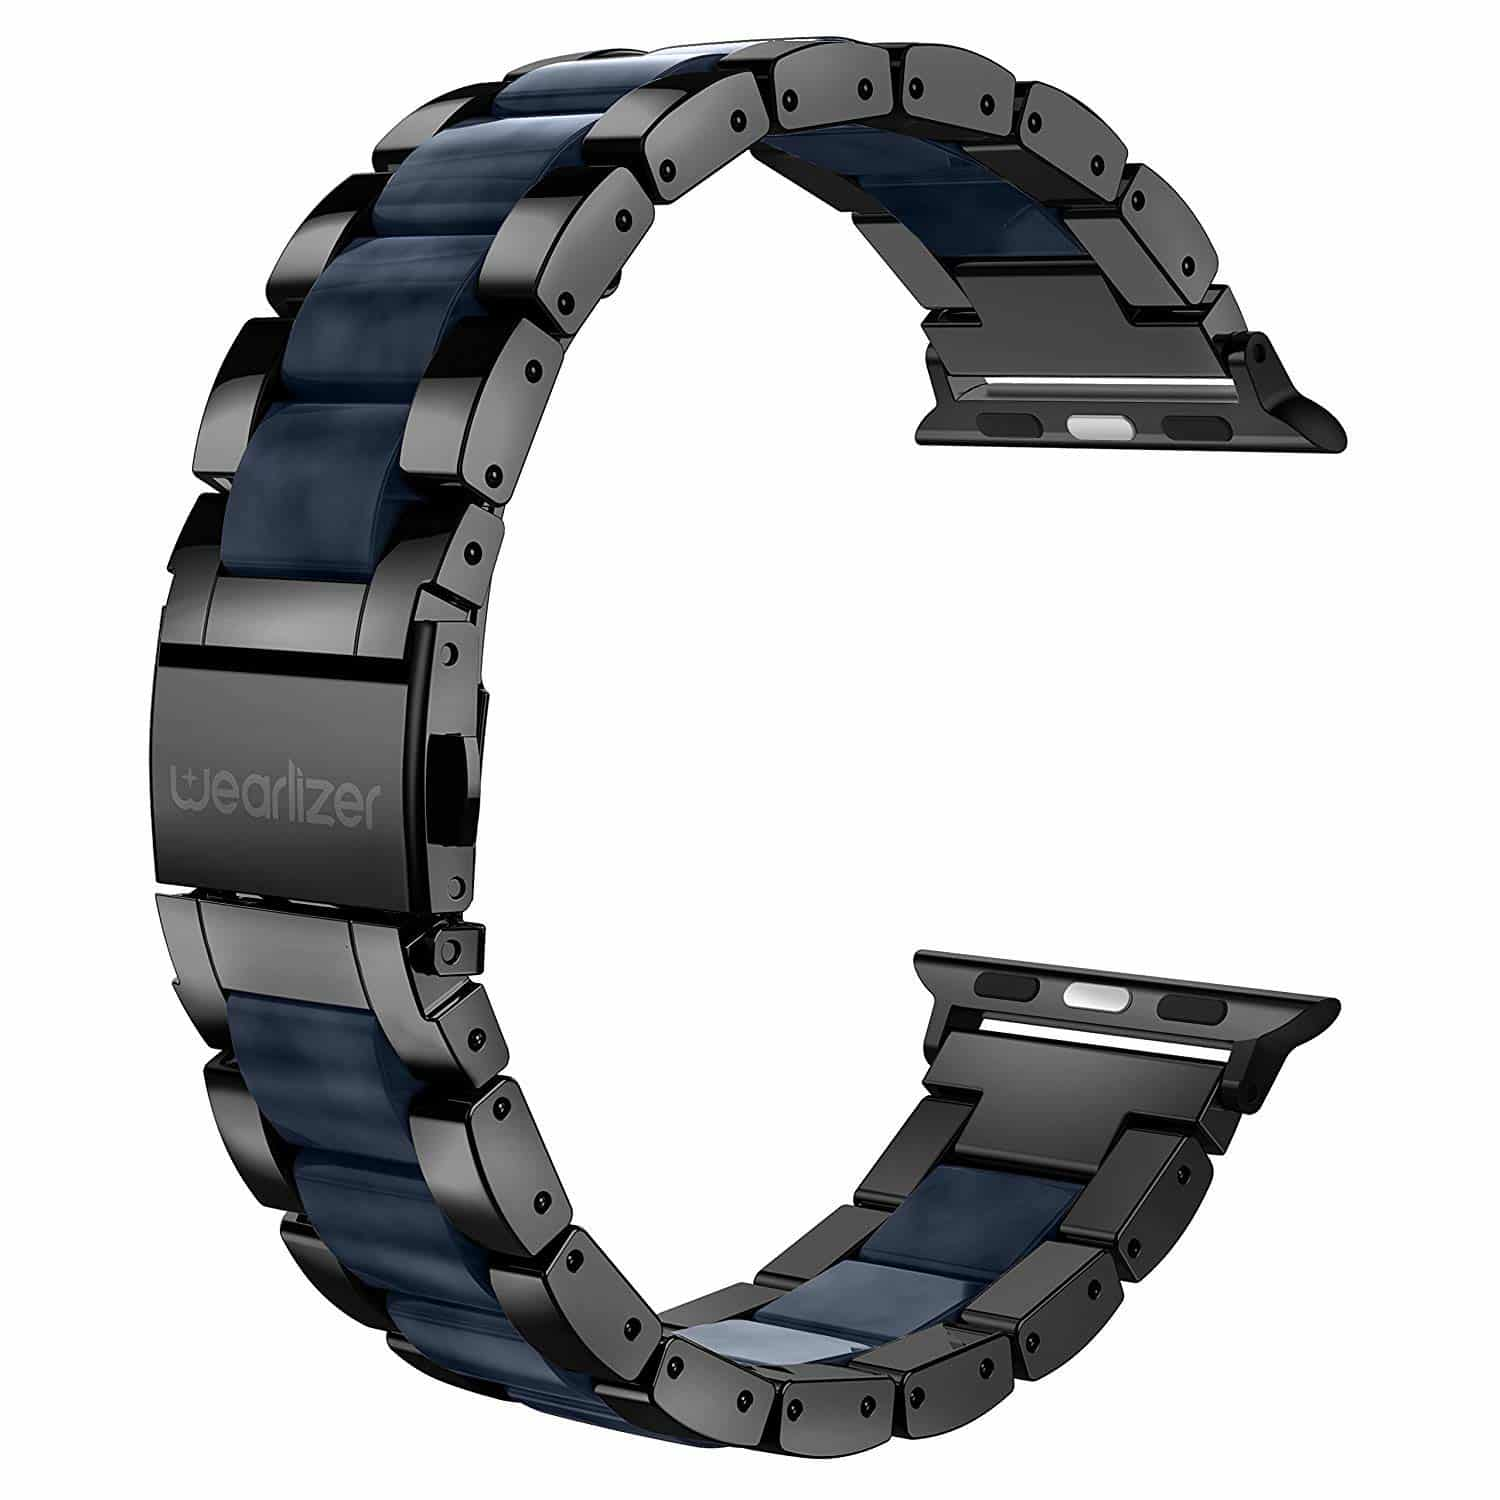 Wearlizer Black Compatible with Apple Watch Band-min